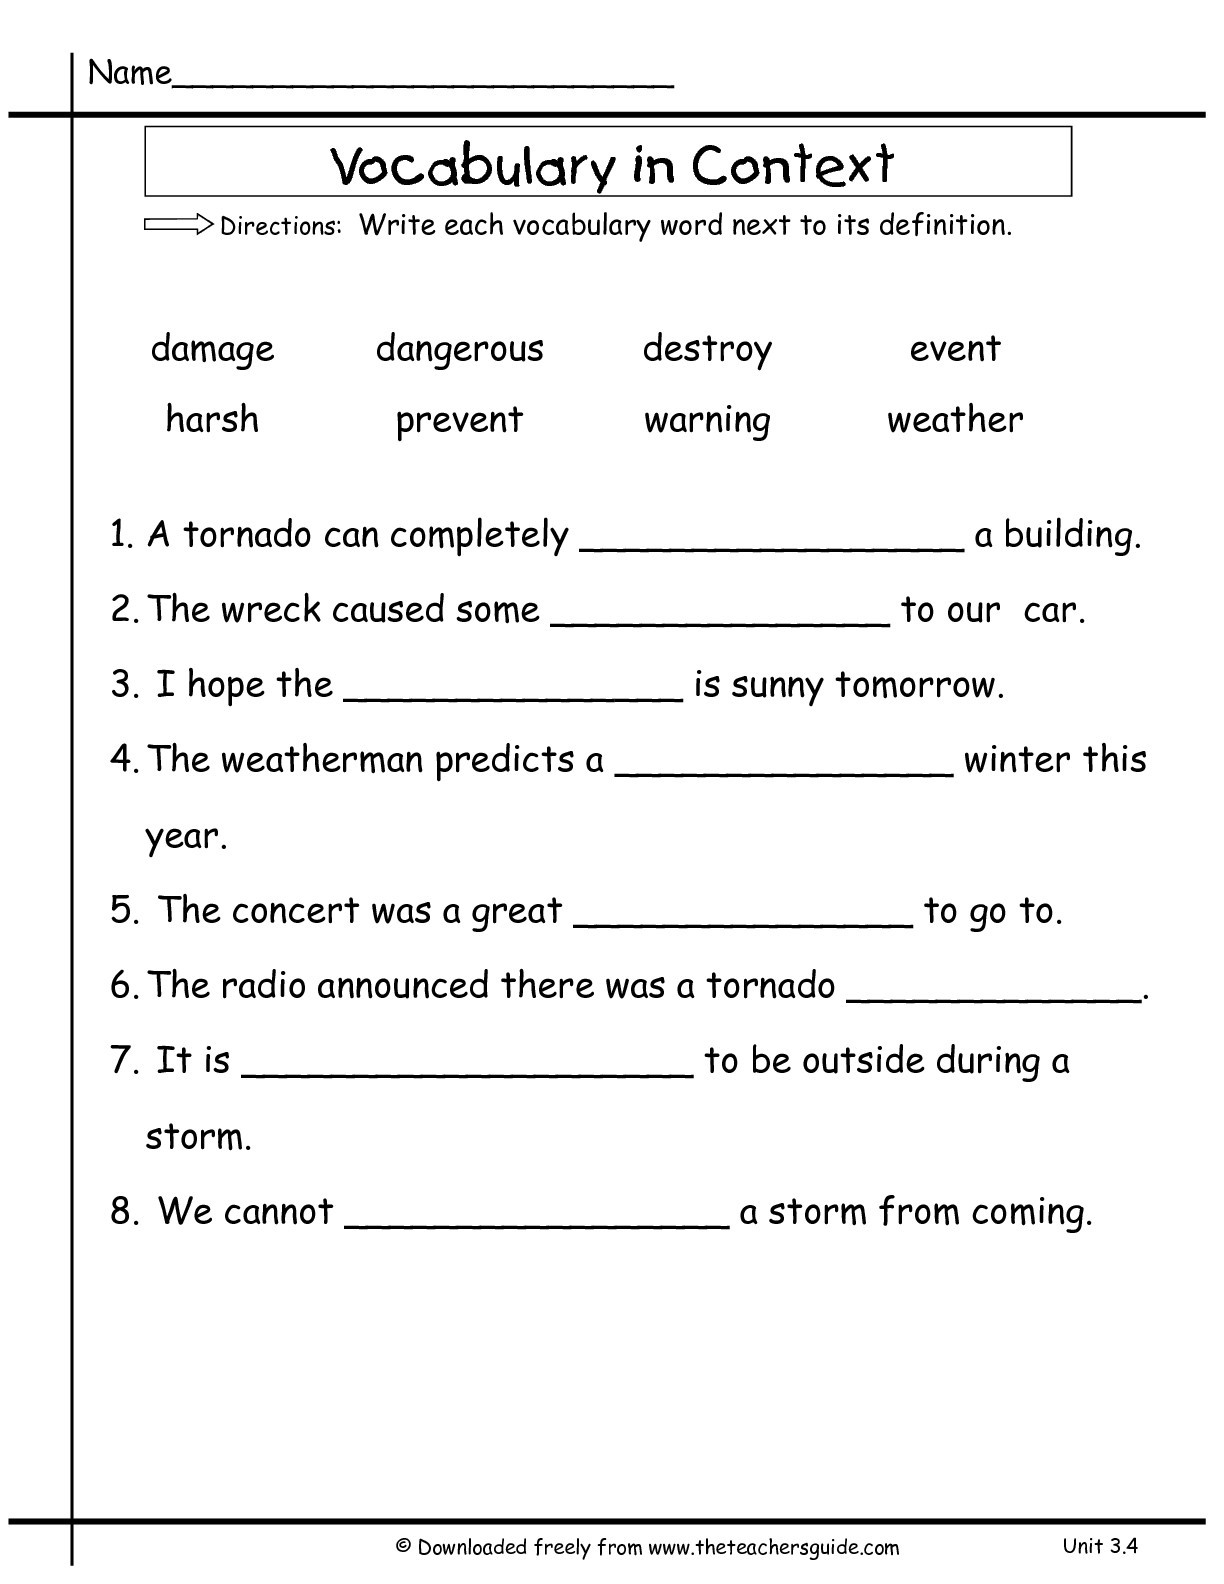 Dictionary Skill Worksheets 3rd Grade Second Grade Dictionary Practice Worksheets